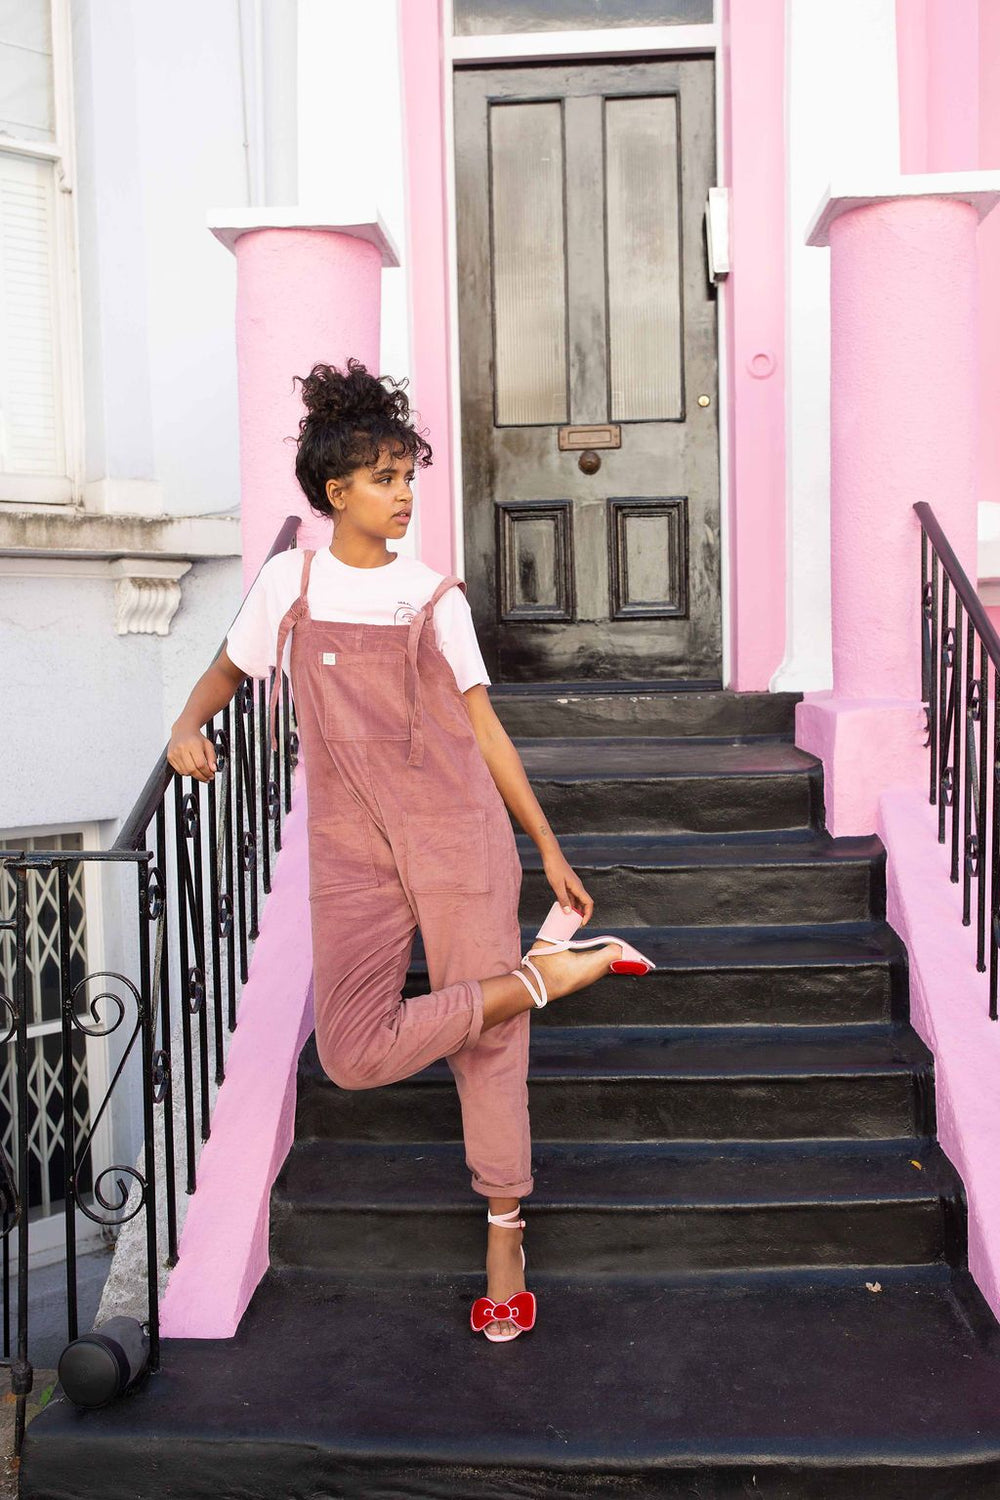 Lucy & Yak Organic Dungarees Tall - 'The Organic Original' Corduroy Dungarees in Ash Pink